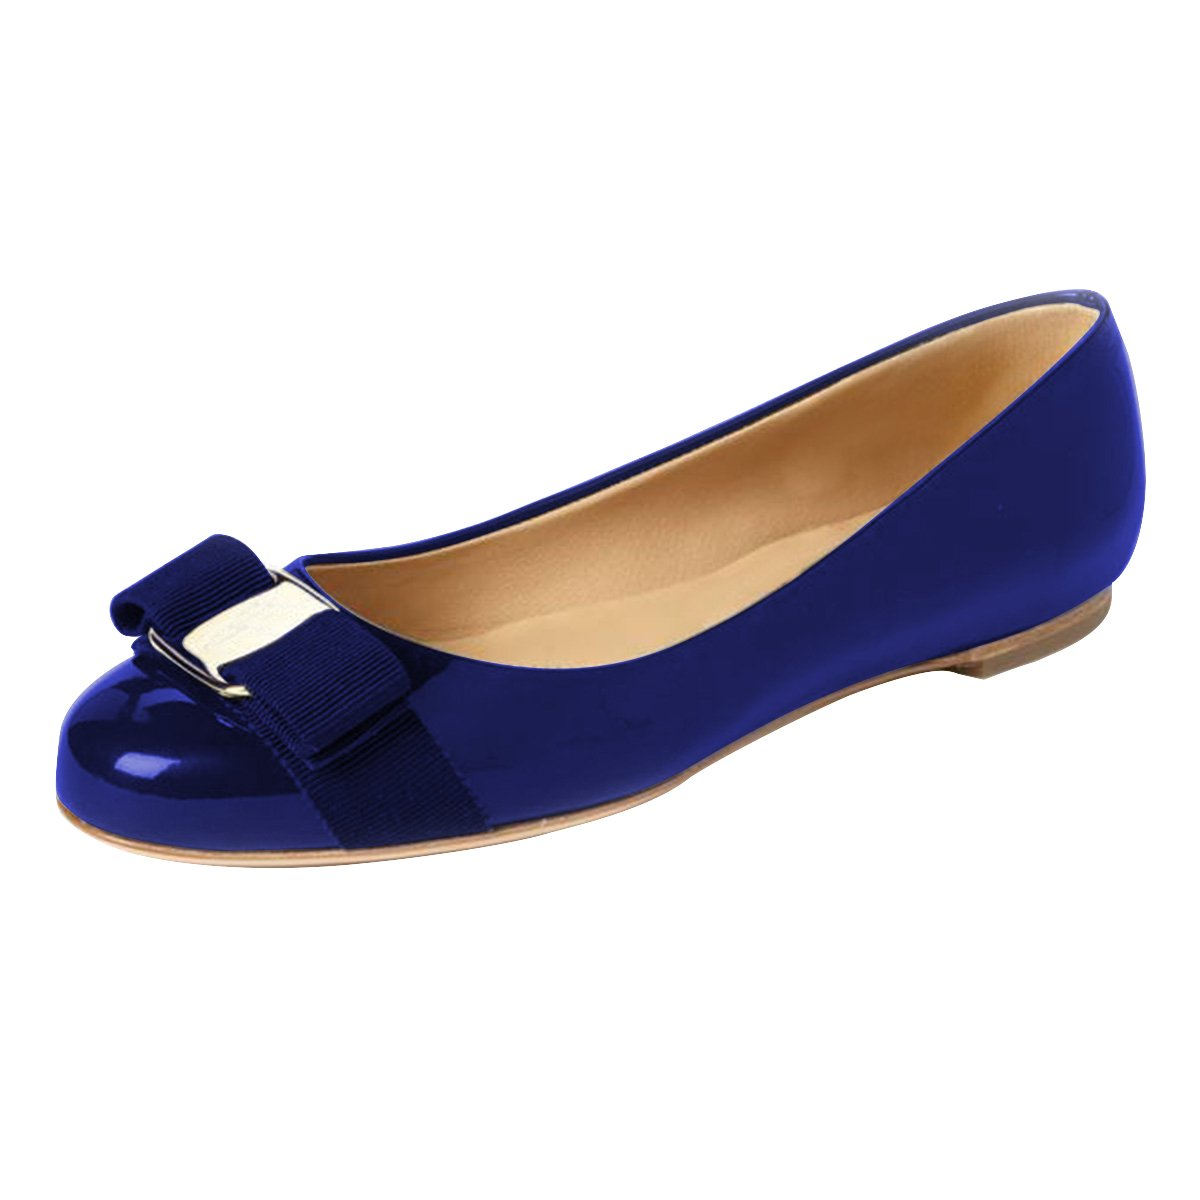 FSJ Women Cute Bowknot Round Toe Ballet Flats Slip On Casual Office Comfy Pumps Shoes Size 4-15 US B077P2YN1T 8 B(M) US|Blue